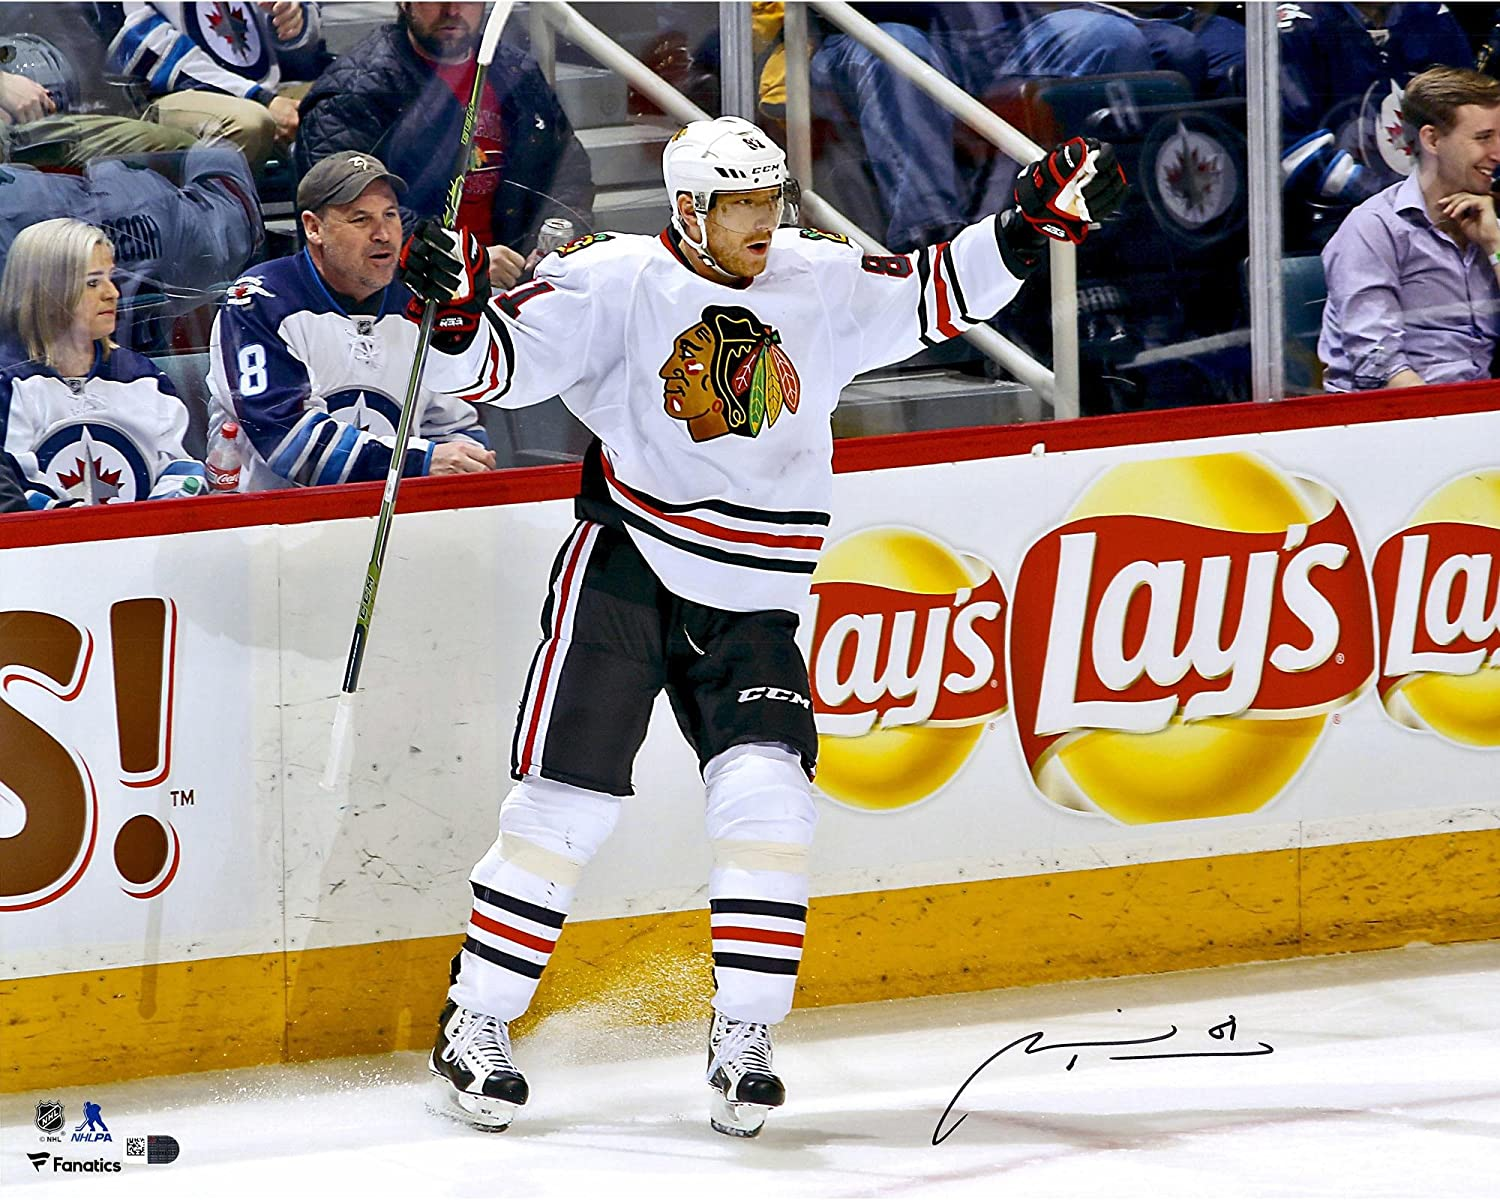 Marian Hossa Chicago Blackhawks Autographed 16' x 20' White Jersey Goal Celebration Photograph - Fanatics Authentic Certified